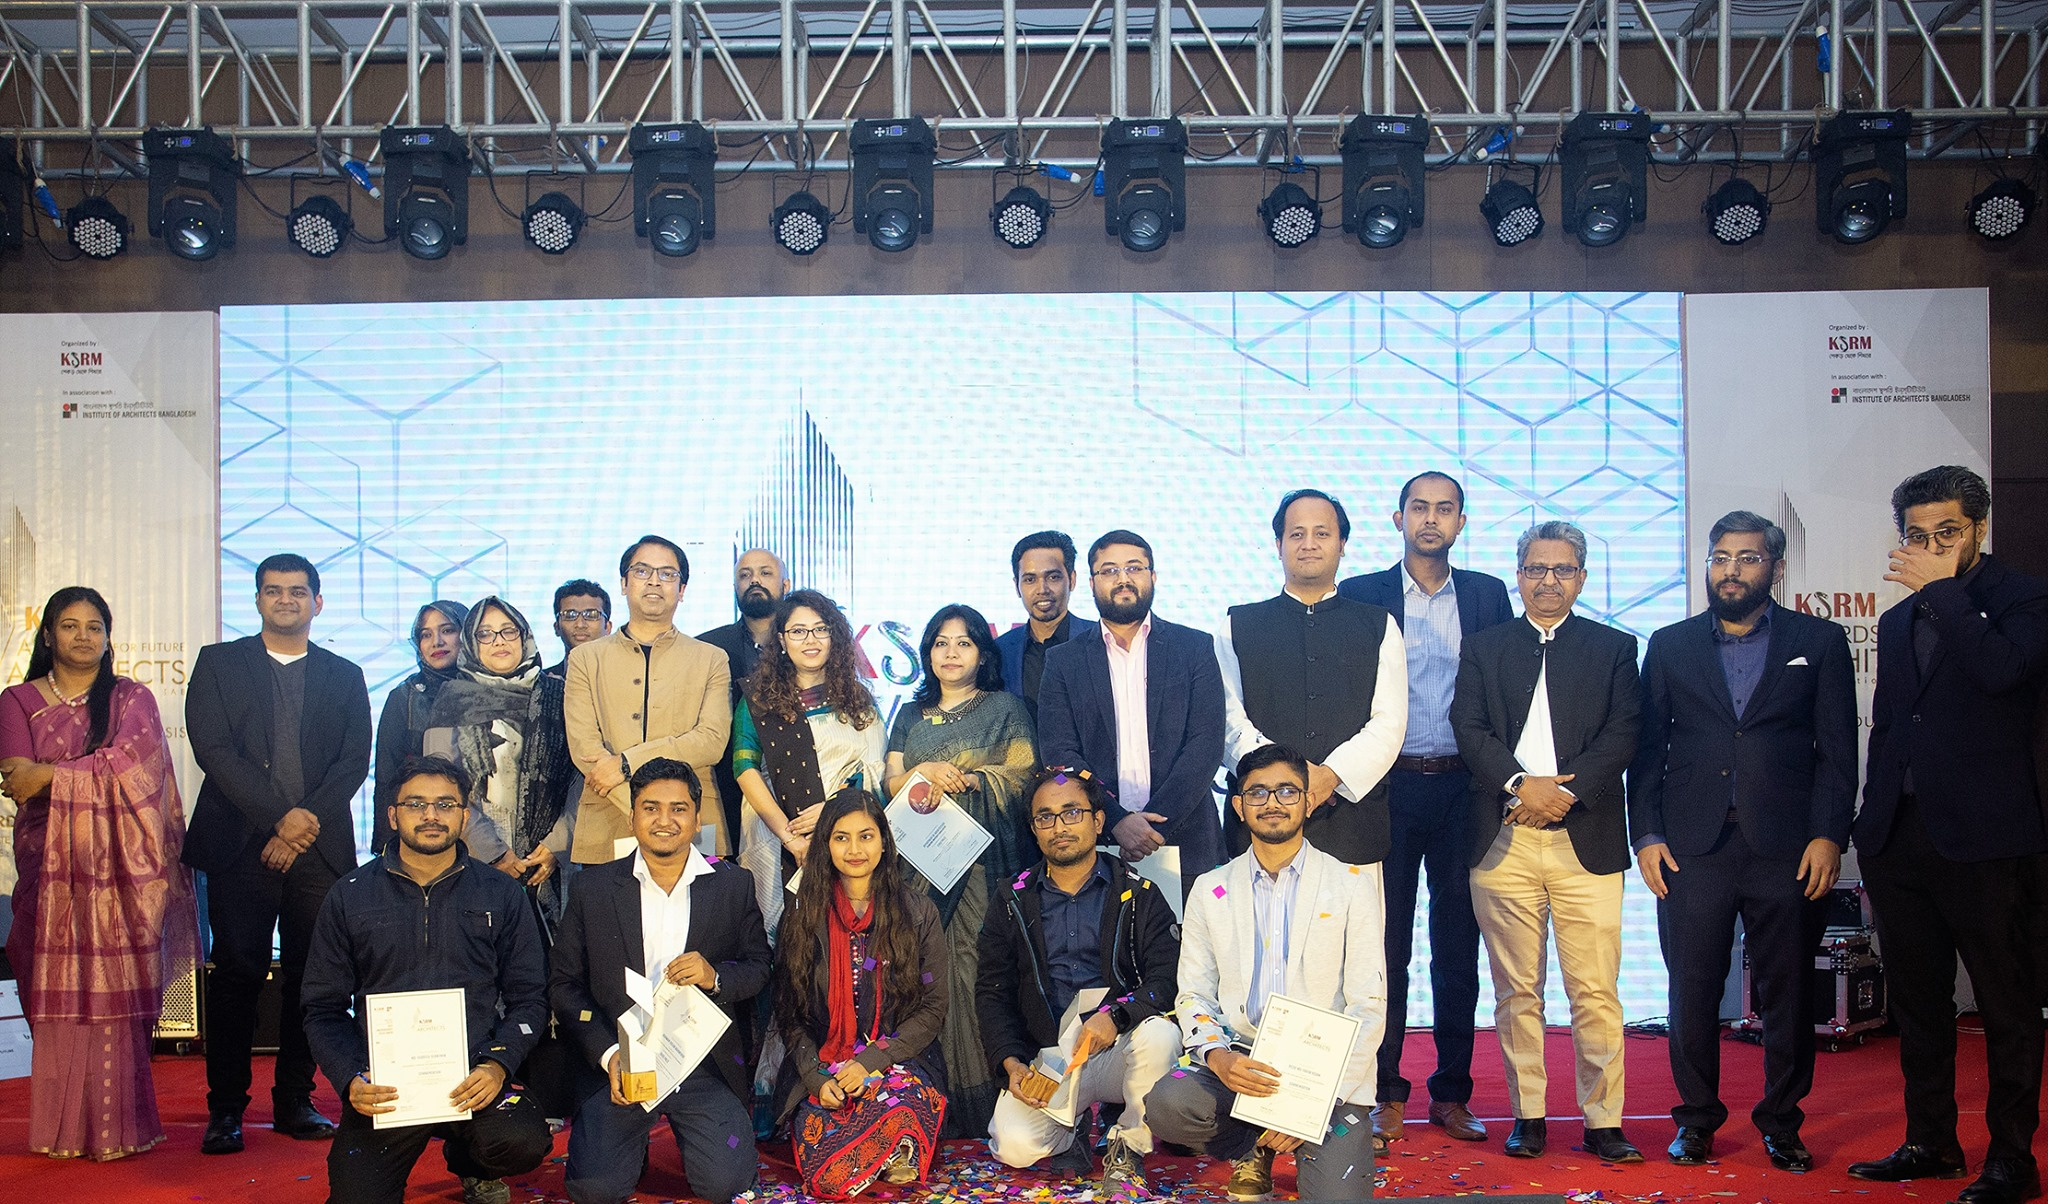 Recipients of the award with the studio teachers and organizers